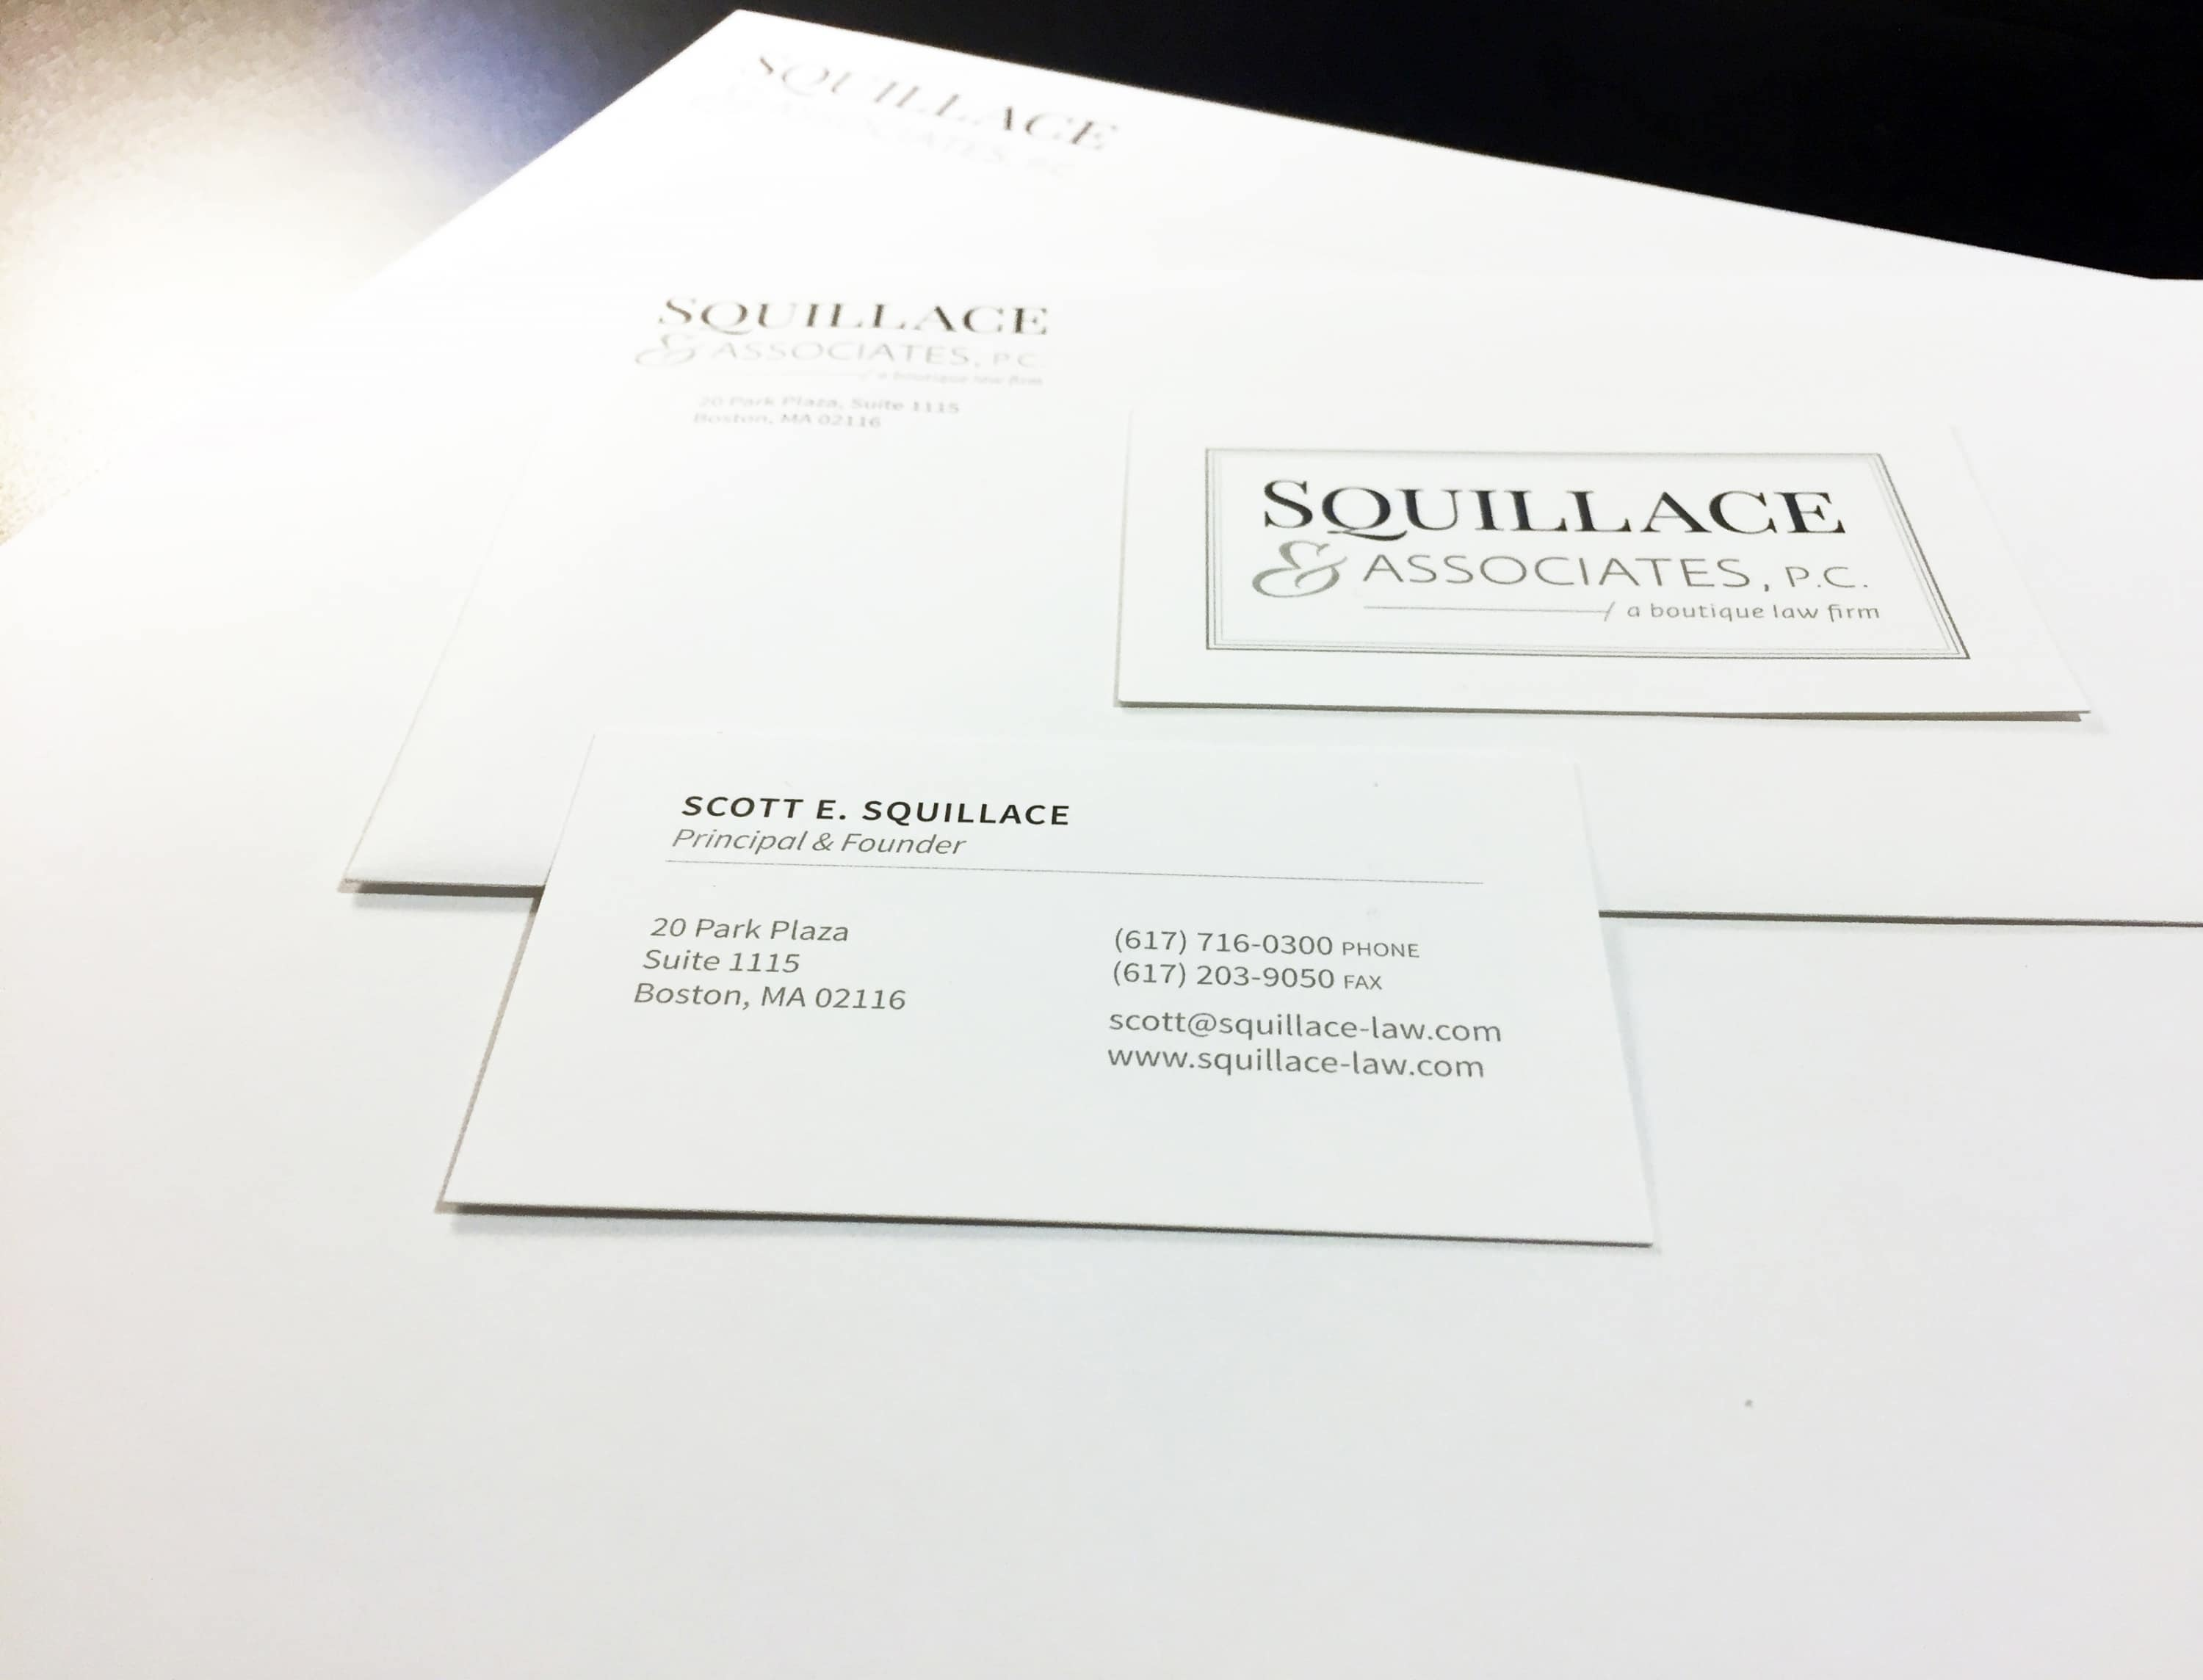 Squillace & Associates, P.C. stationery